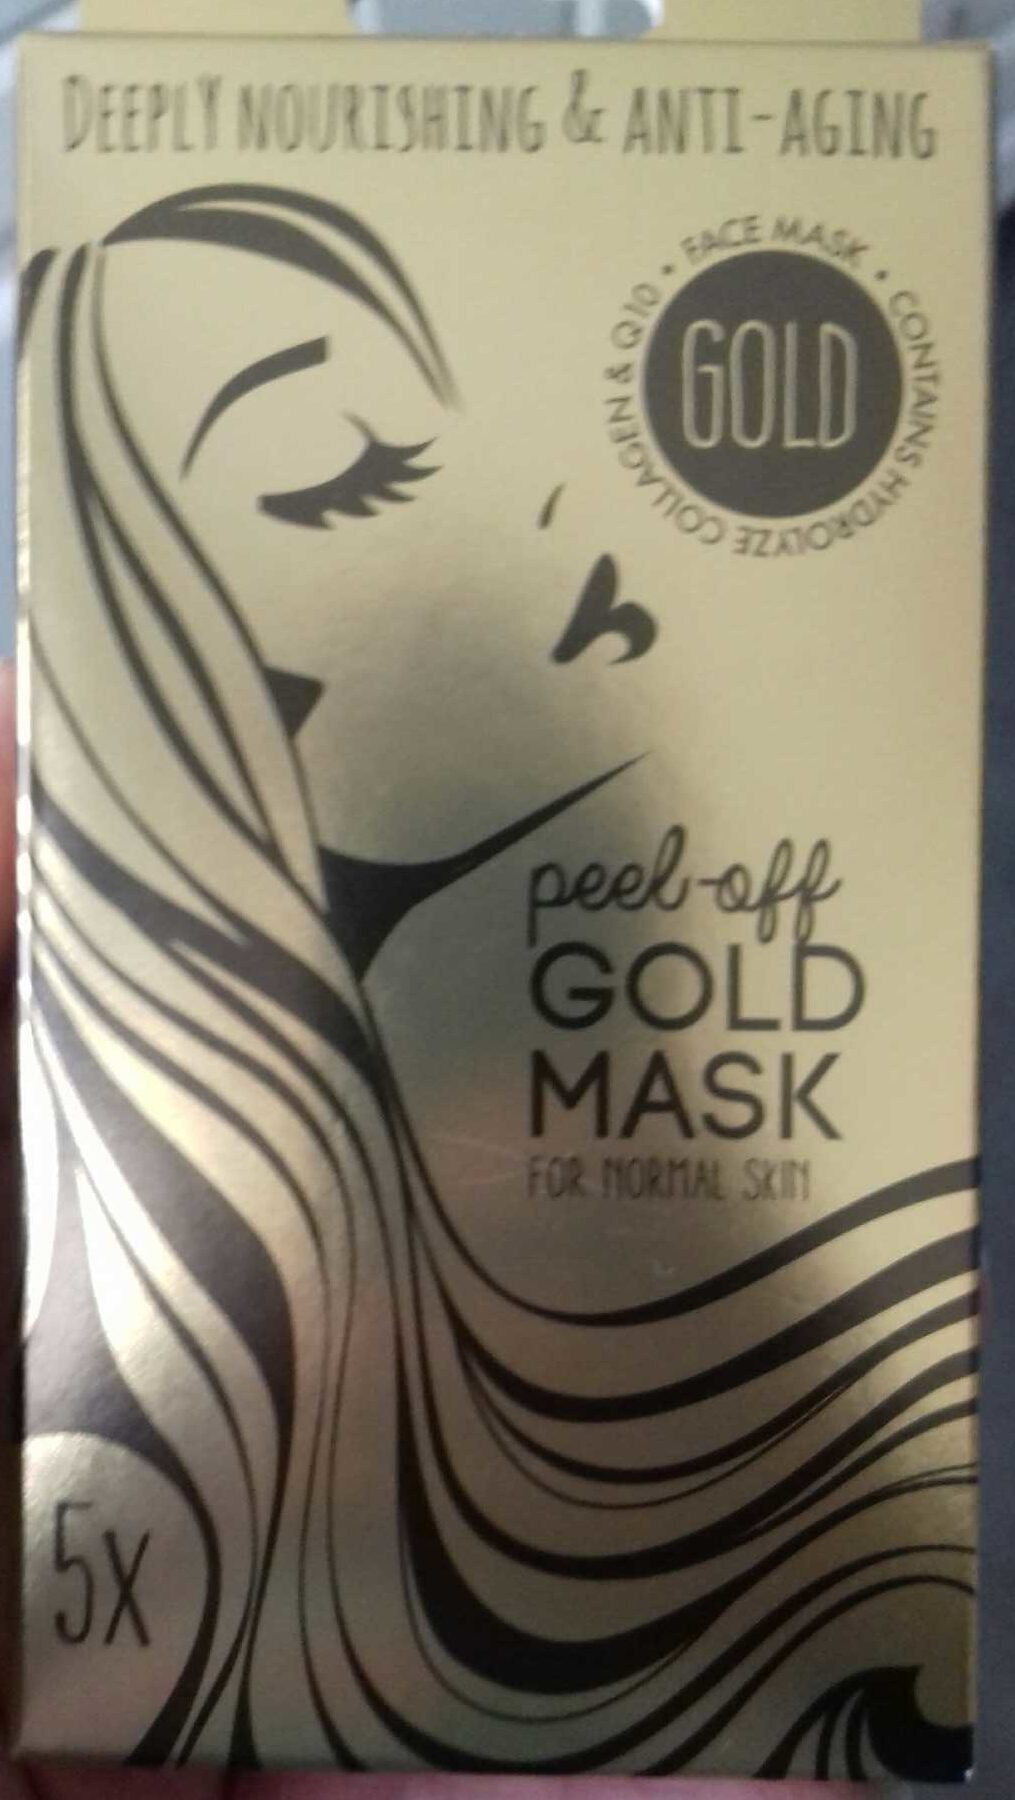 Peel-off gold mask for normal skin - Produit